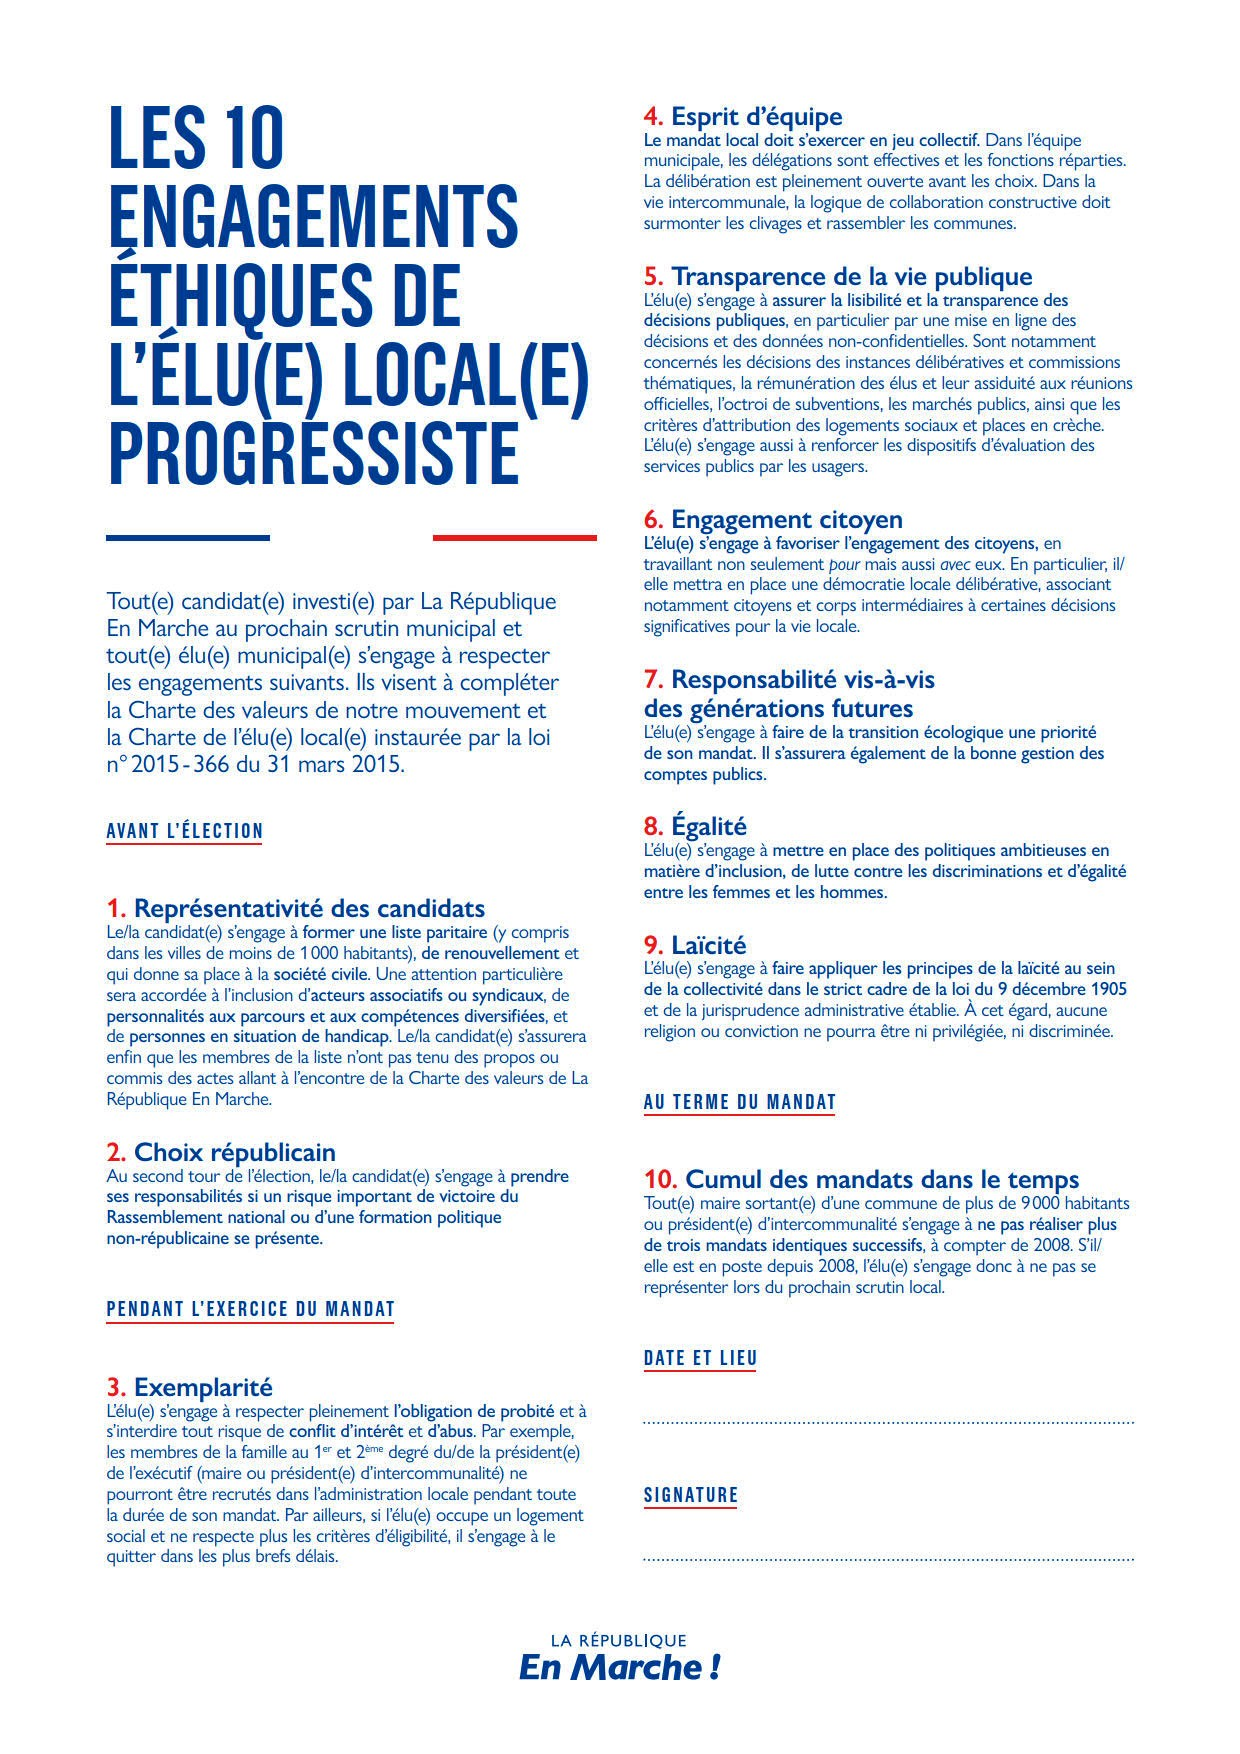 10 engagements éthiques - Élu local progressiste - LREM